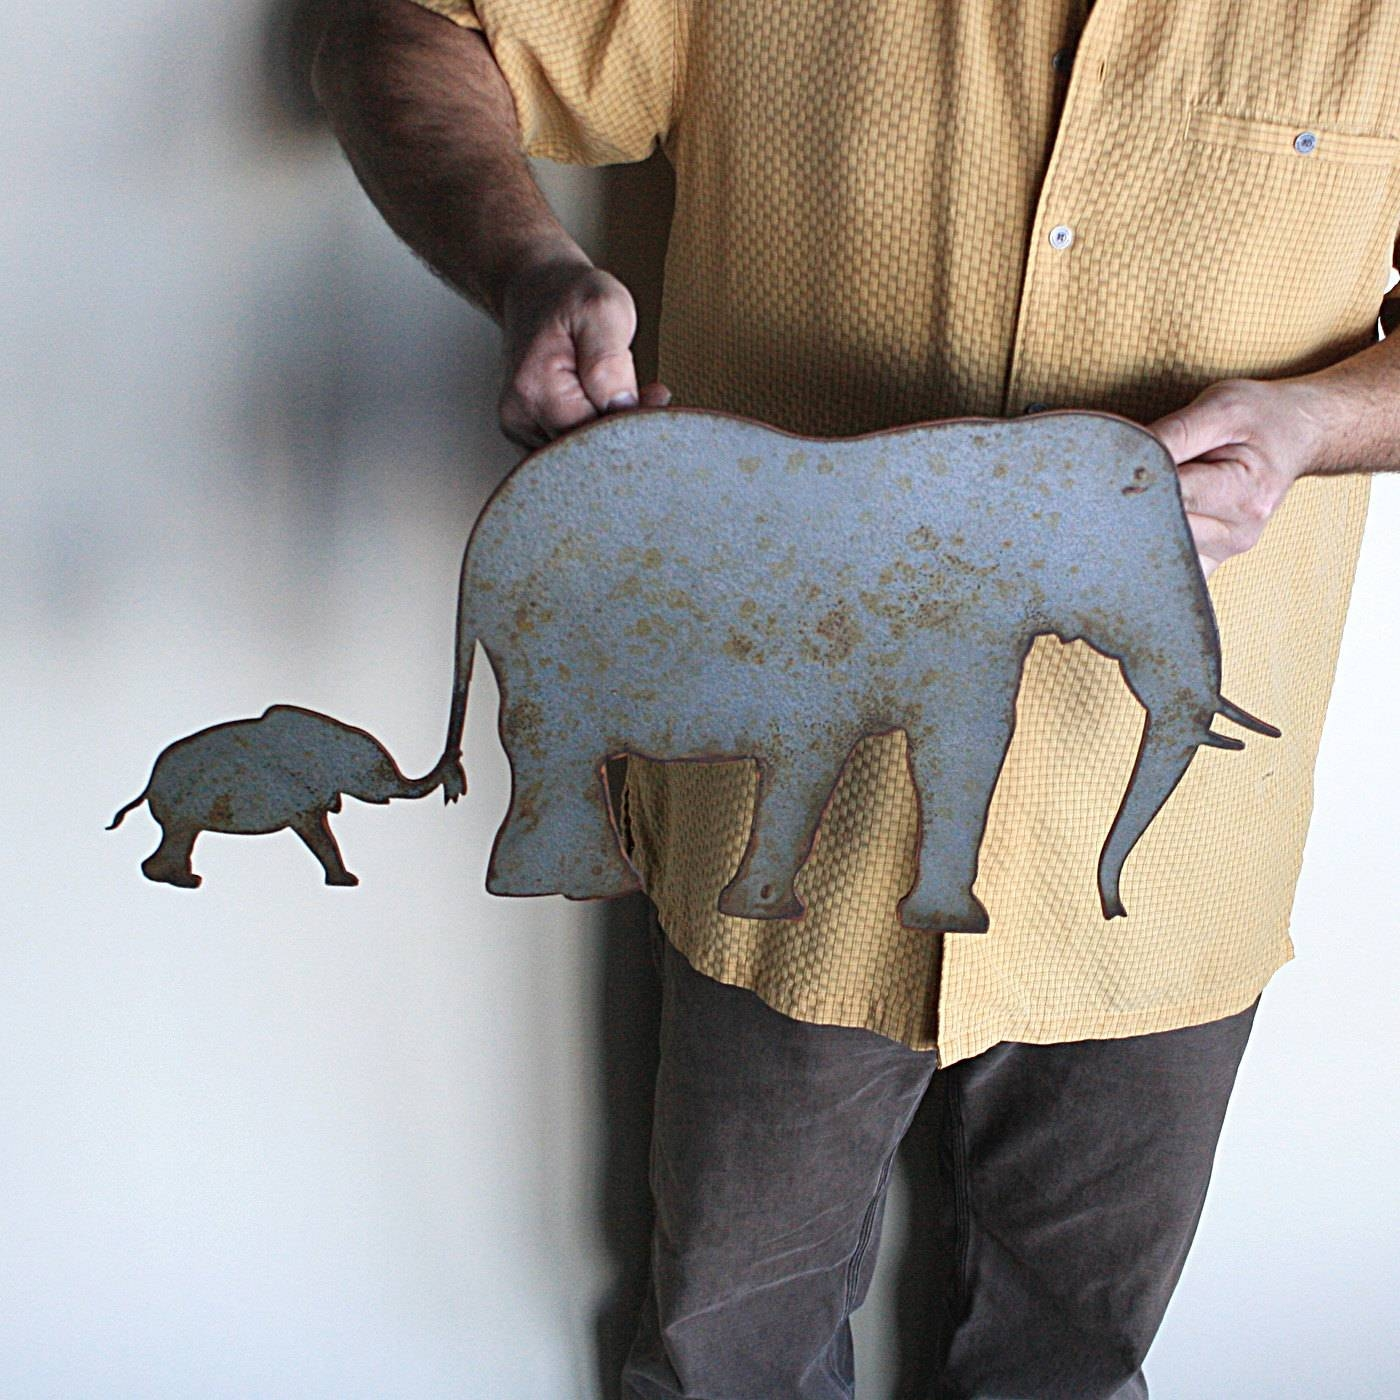 Elephant Metal Wall Art 24 Wide Wall Hanging Intended For Recent Elephant Metal Wall Art (Gallery 3 of 20)